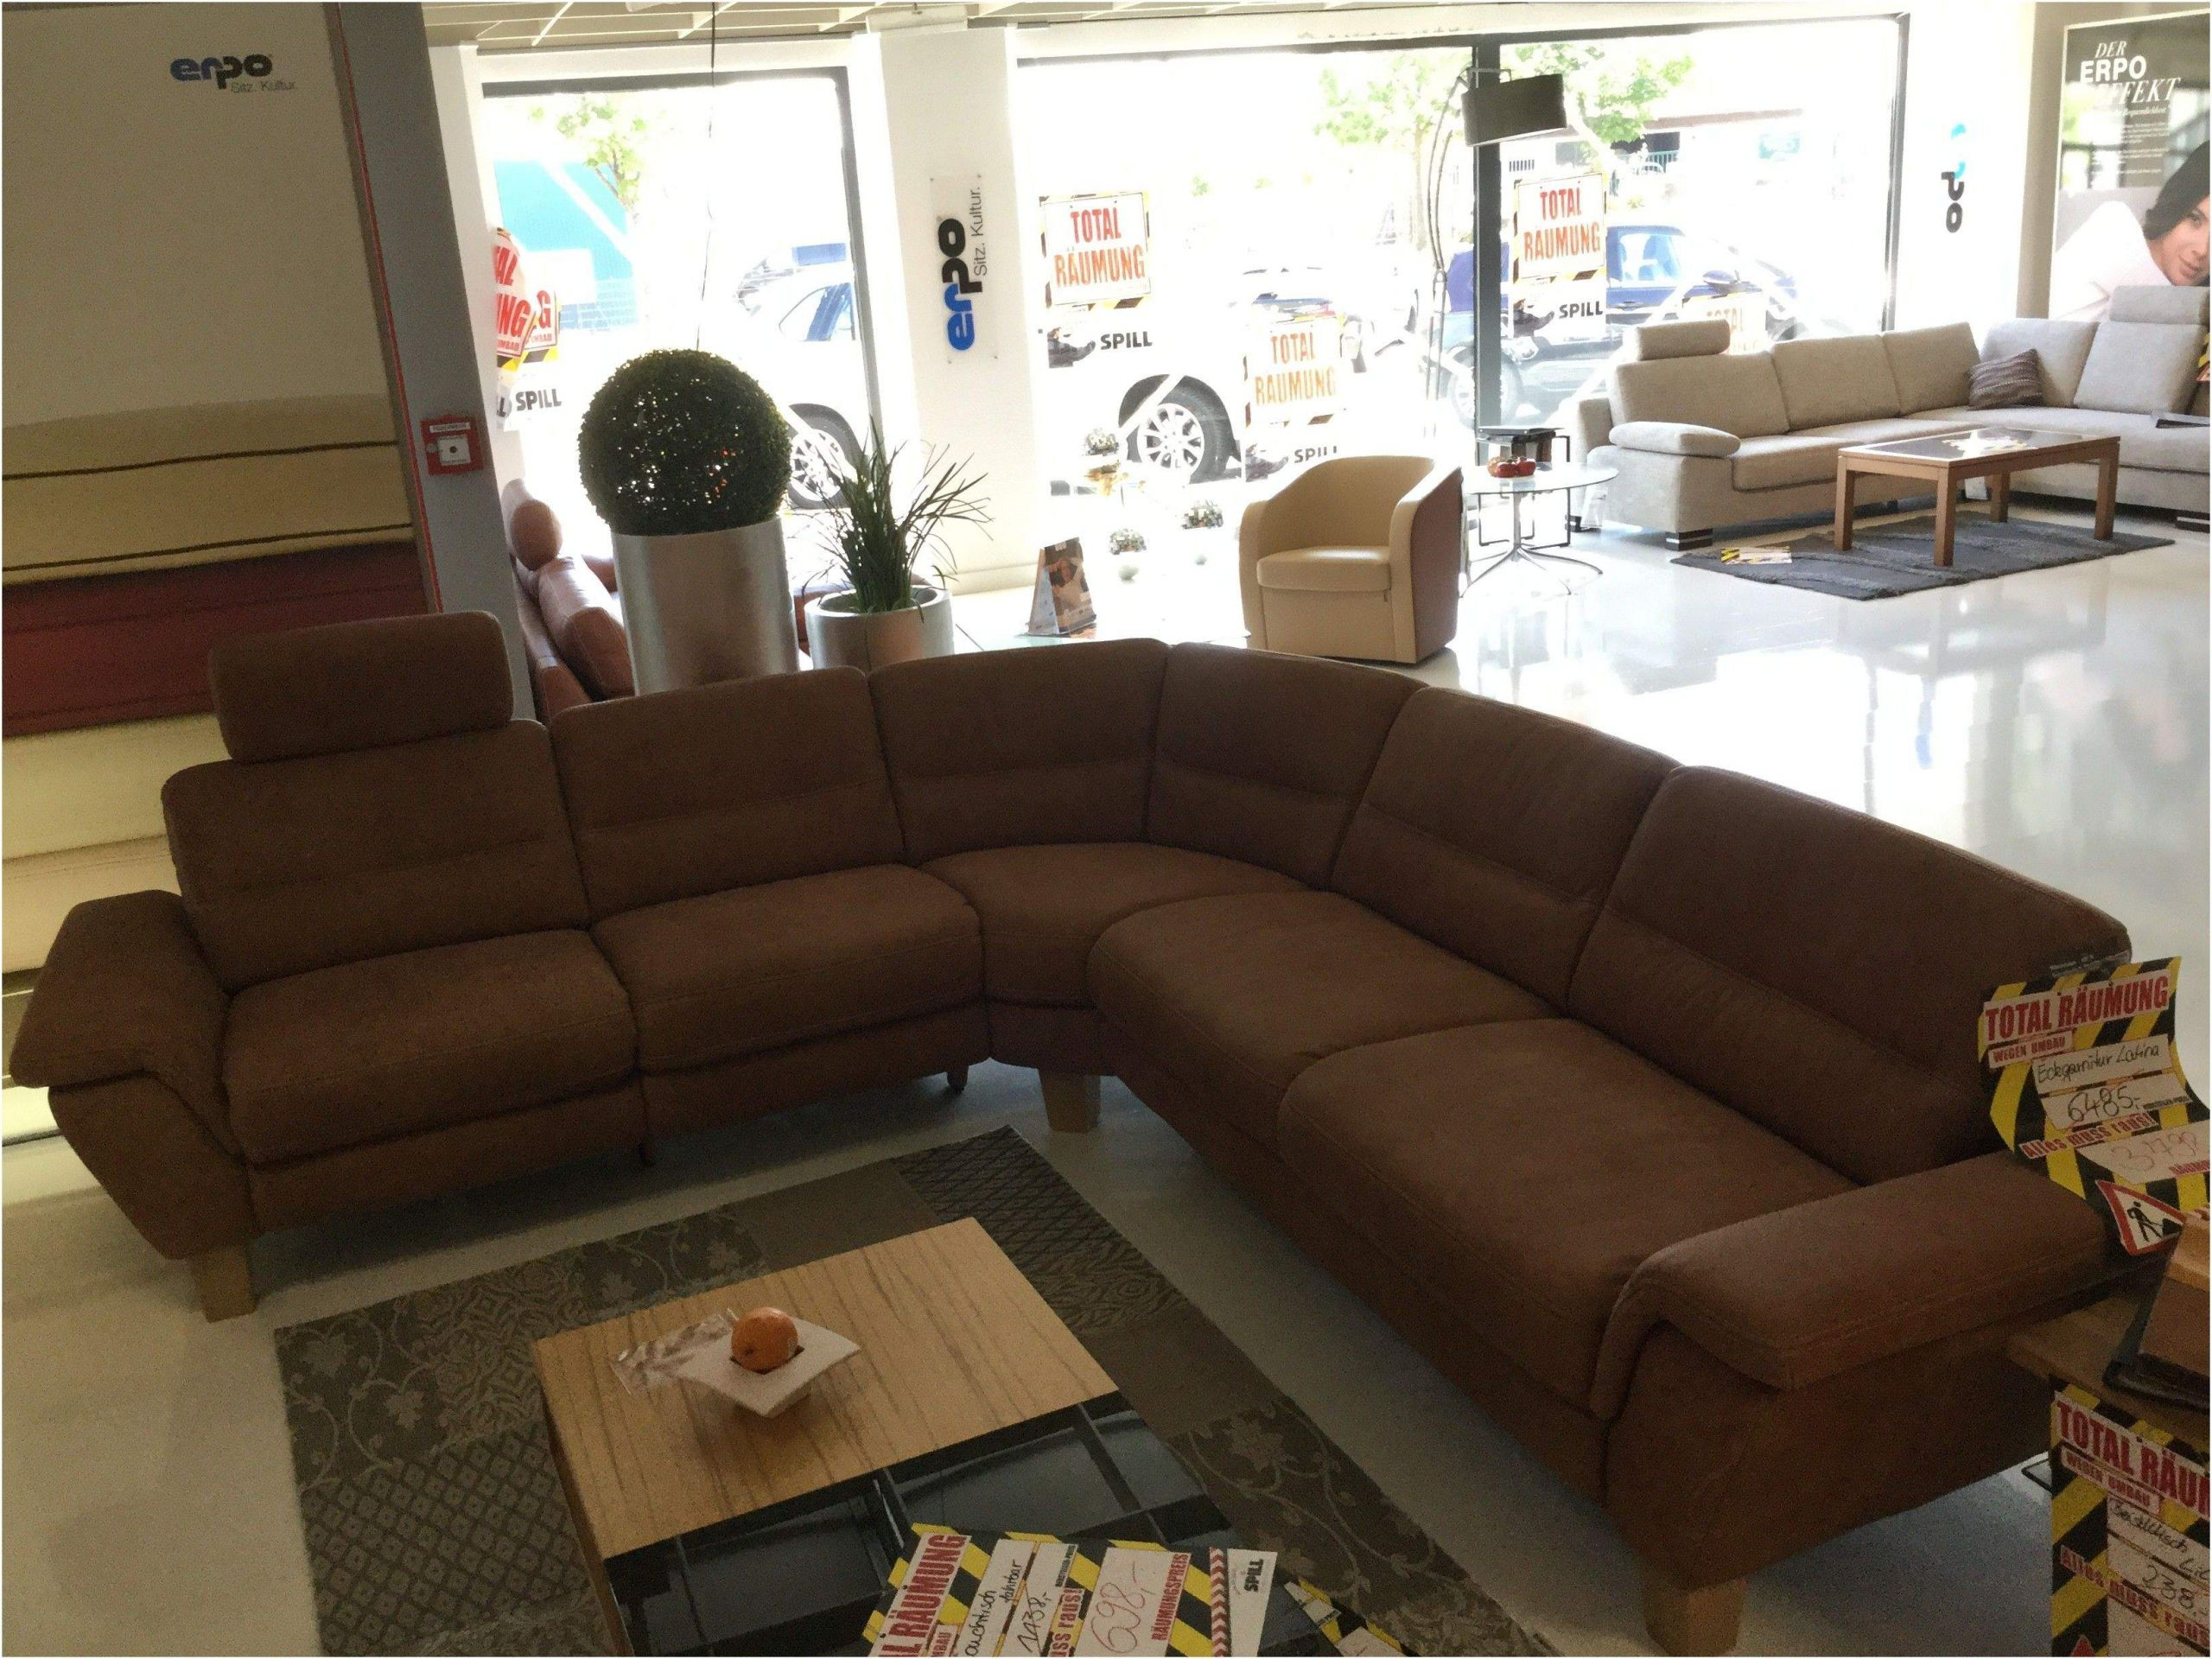 abverkauf wolfgang spill gmbh and co kg in magdeburg trapez sofa mit relaxfunktion